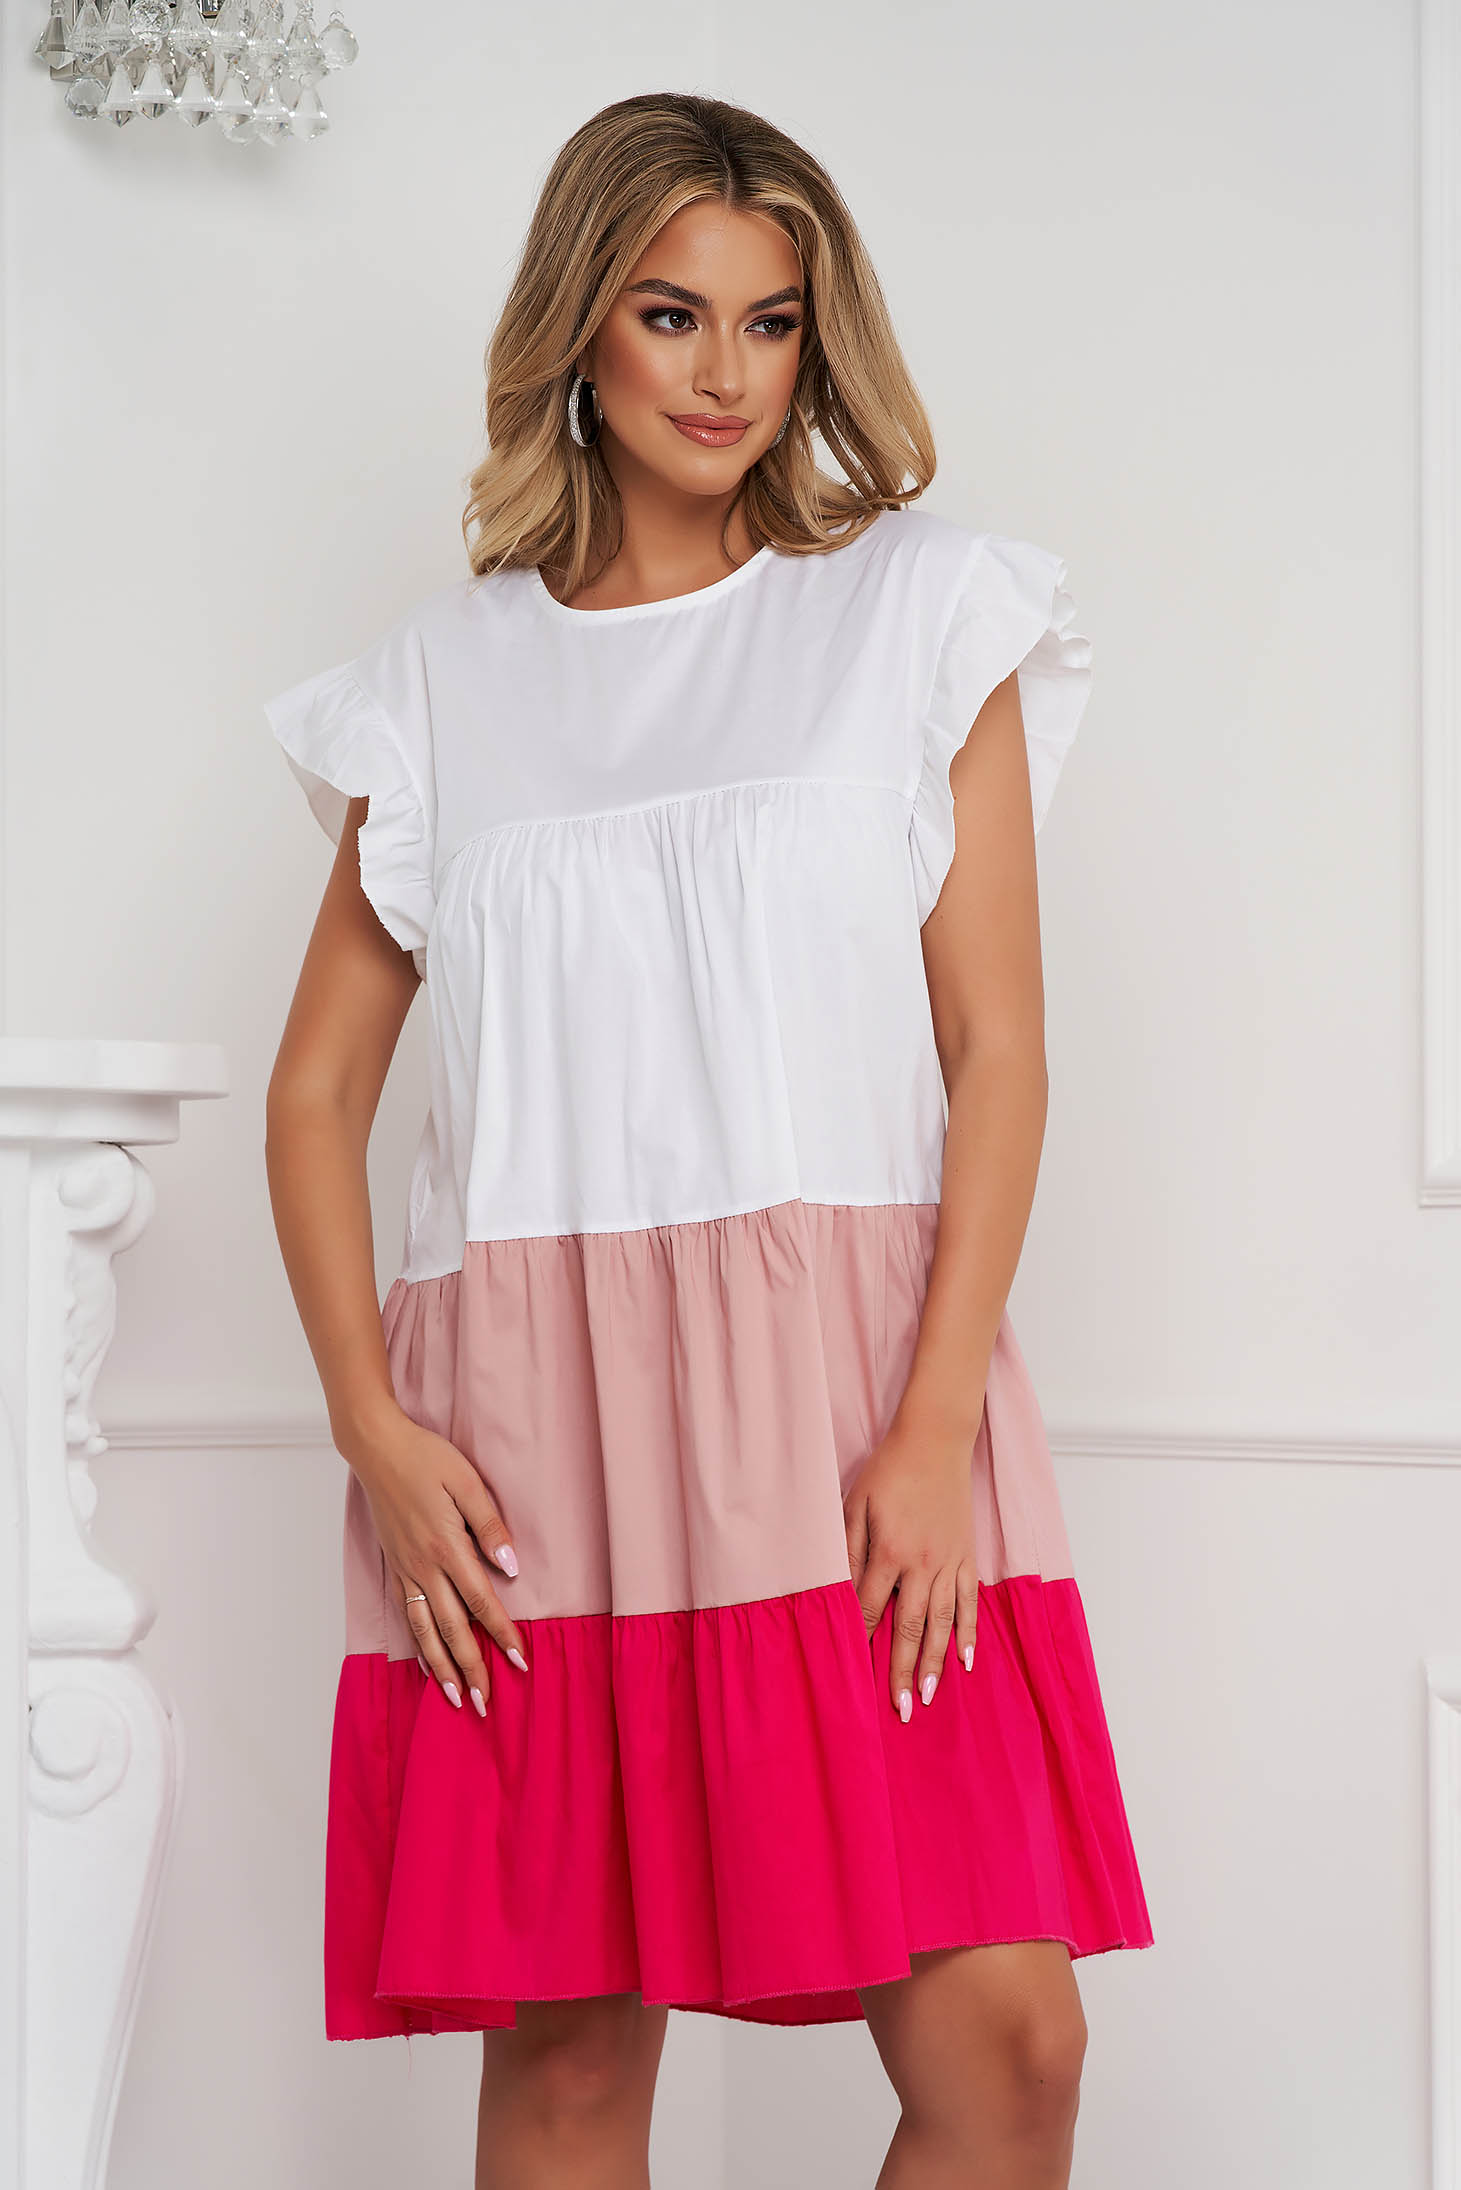 Lightpink dress thin fabric loose fit midi with ruffle details airy fabric